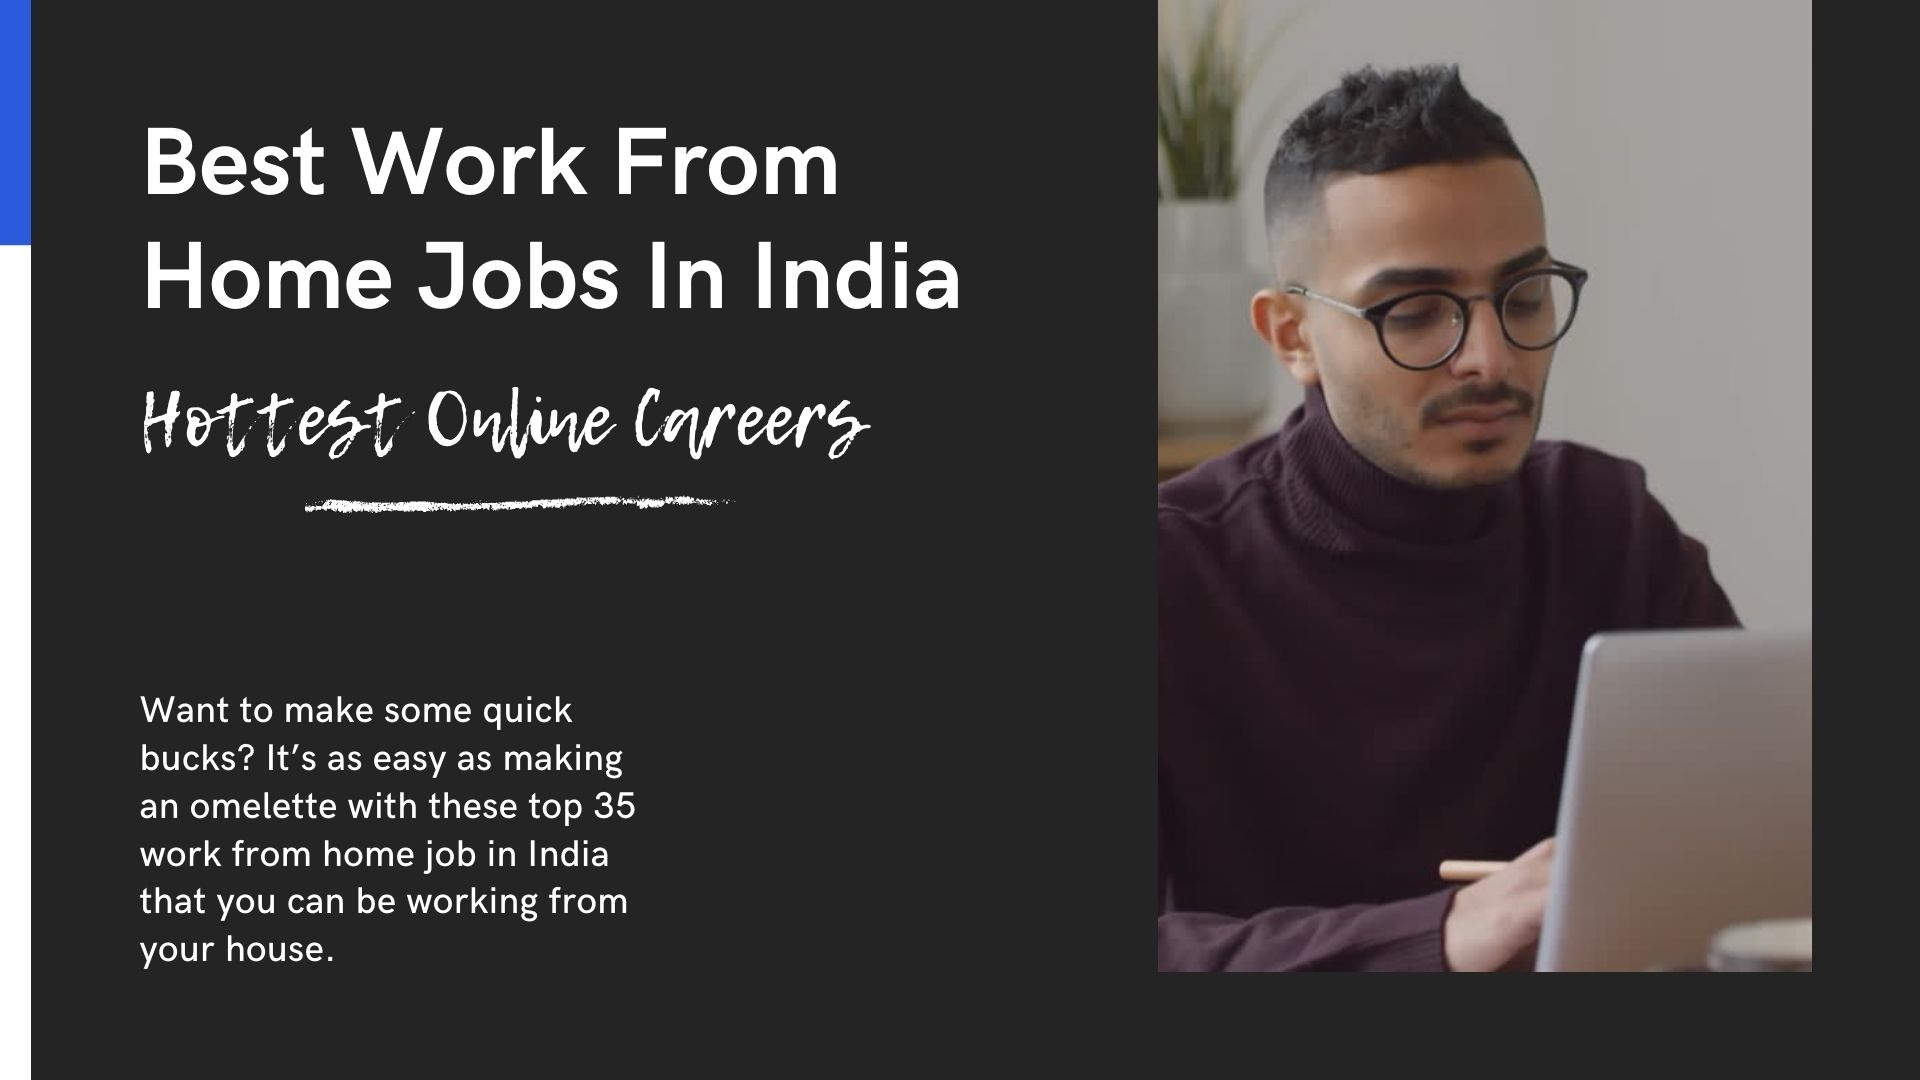 Top 12 Work From Home Jobs In India Hottest Online Working ...